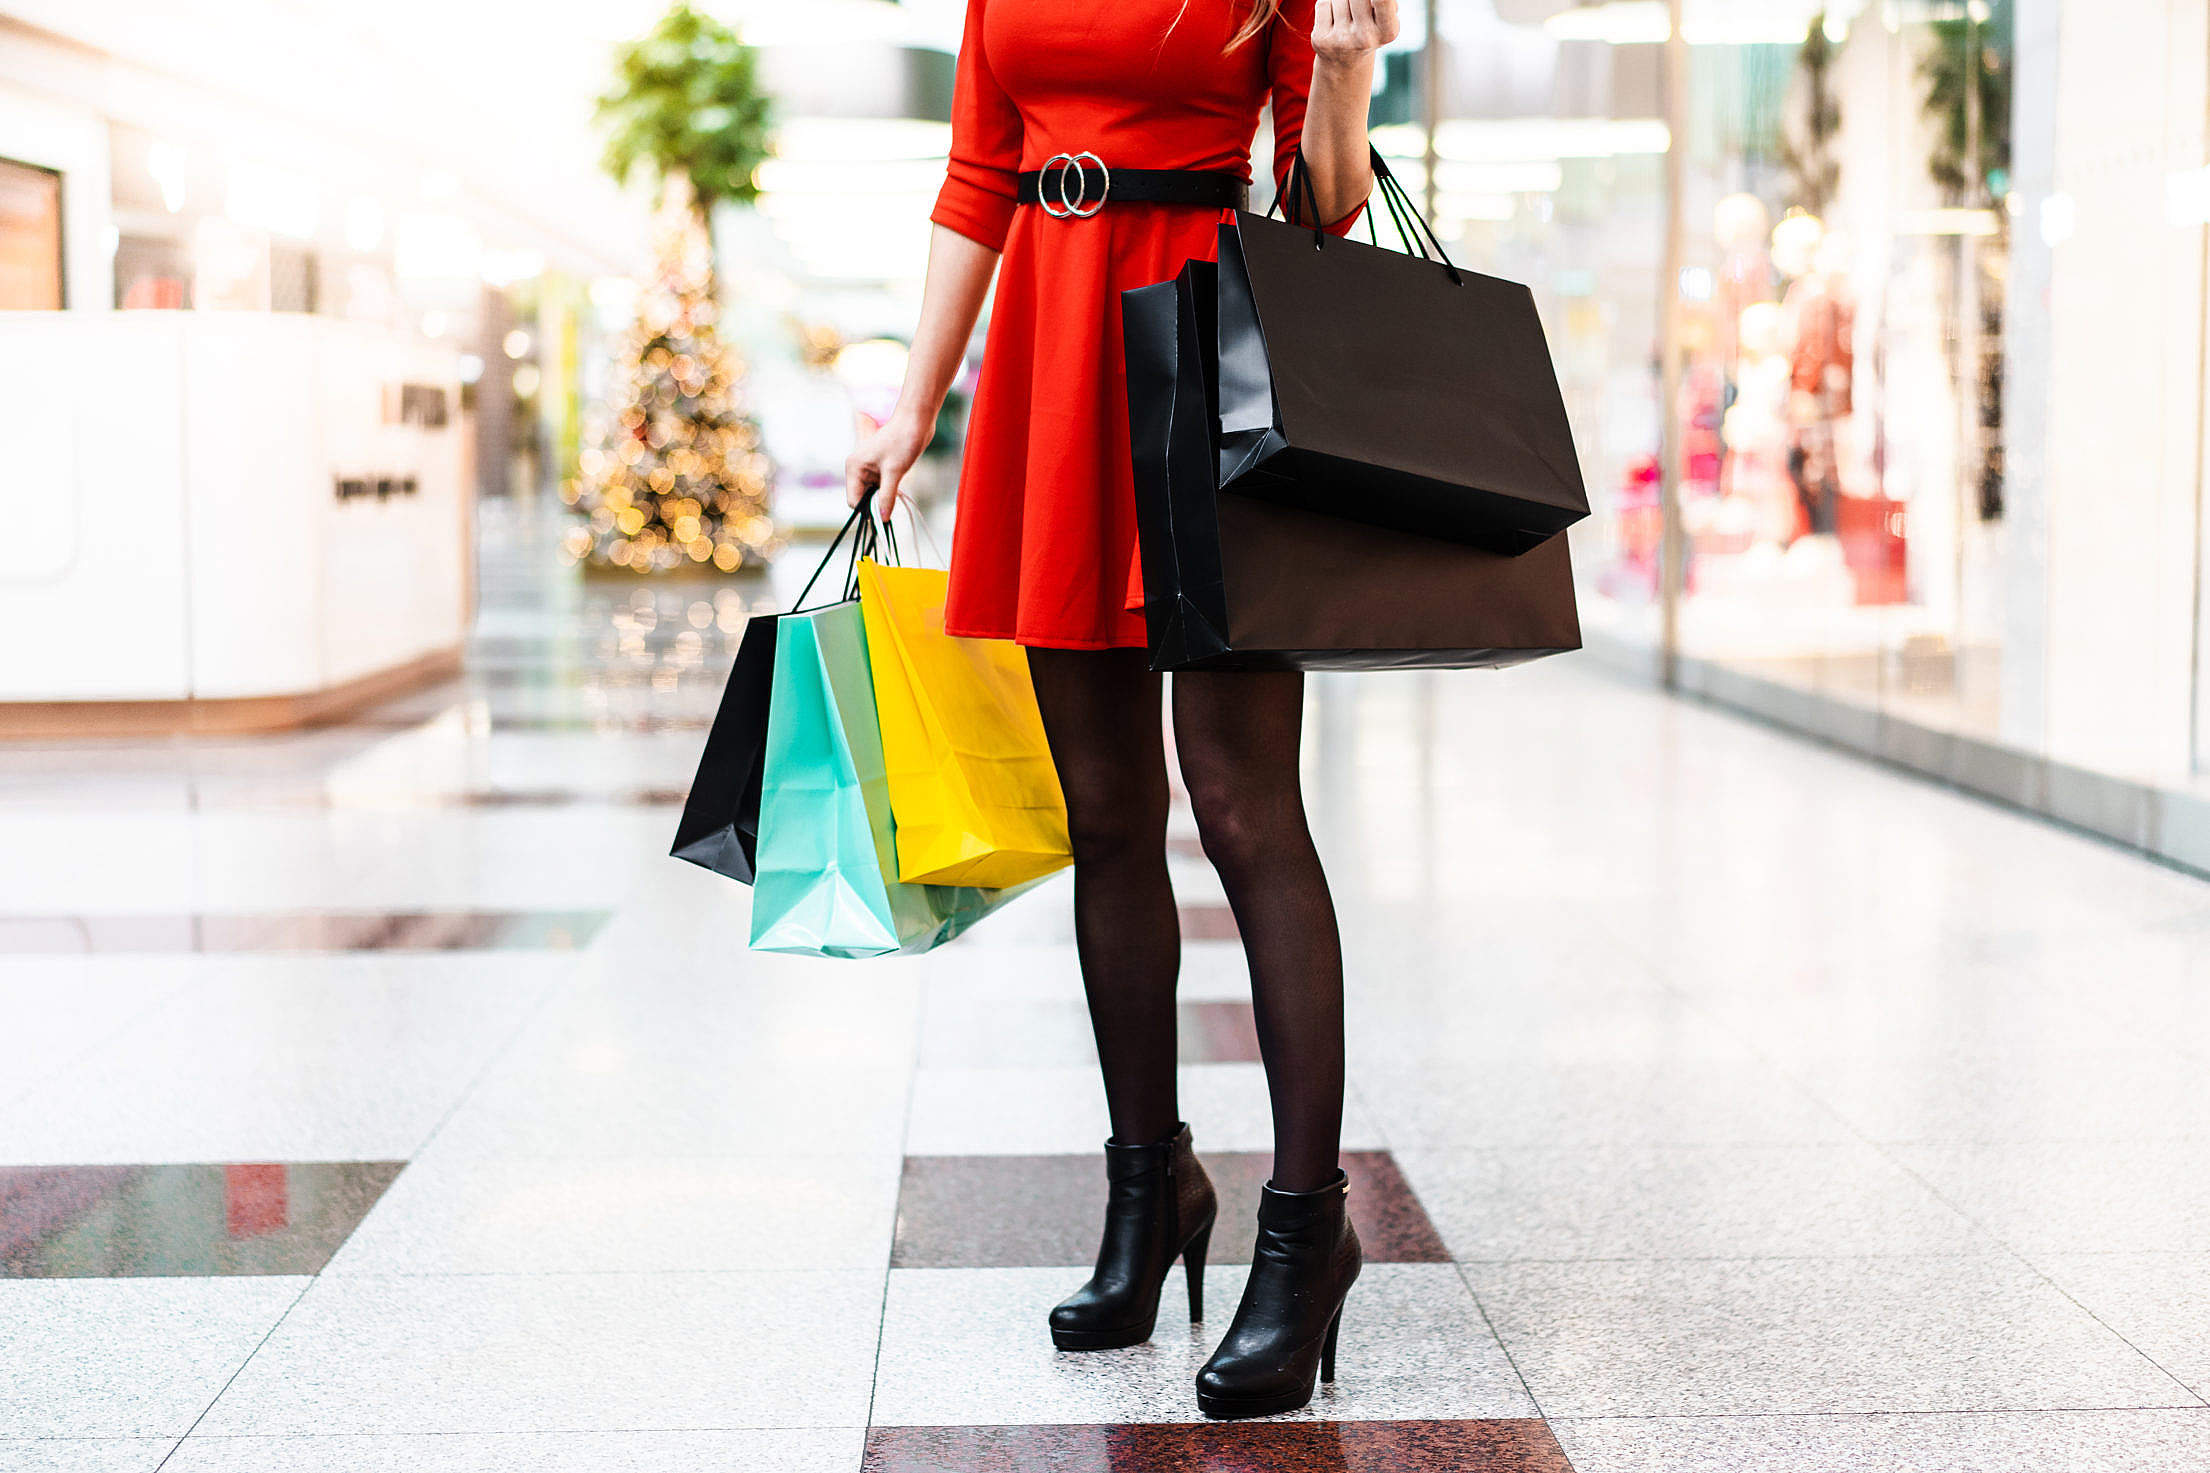 Young Lady After Christmas Shopping Free Stock Photo